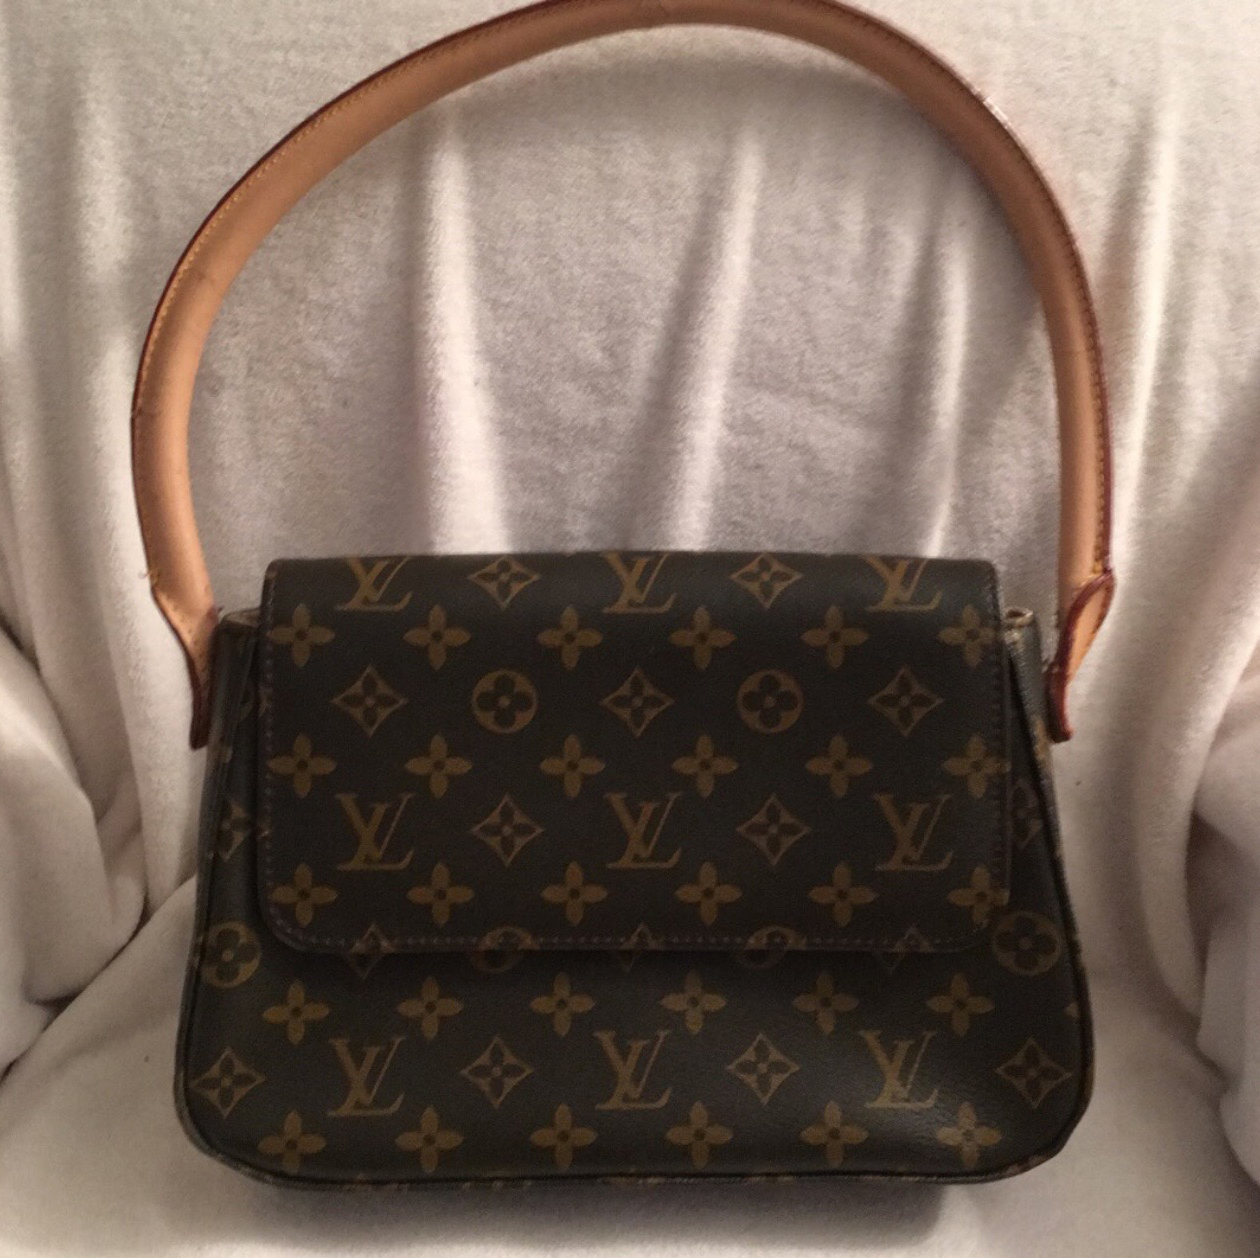 3 Mistakes To Avoid When Buying Used Louis Vuitton Handbags